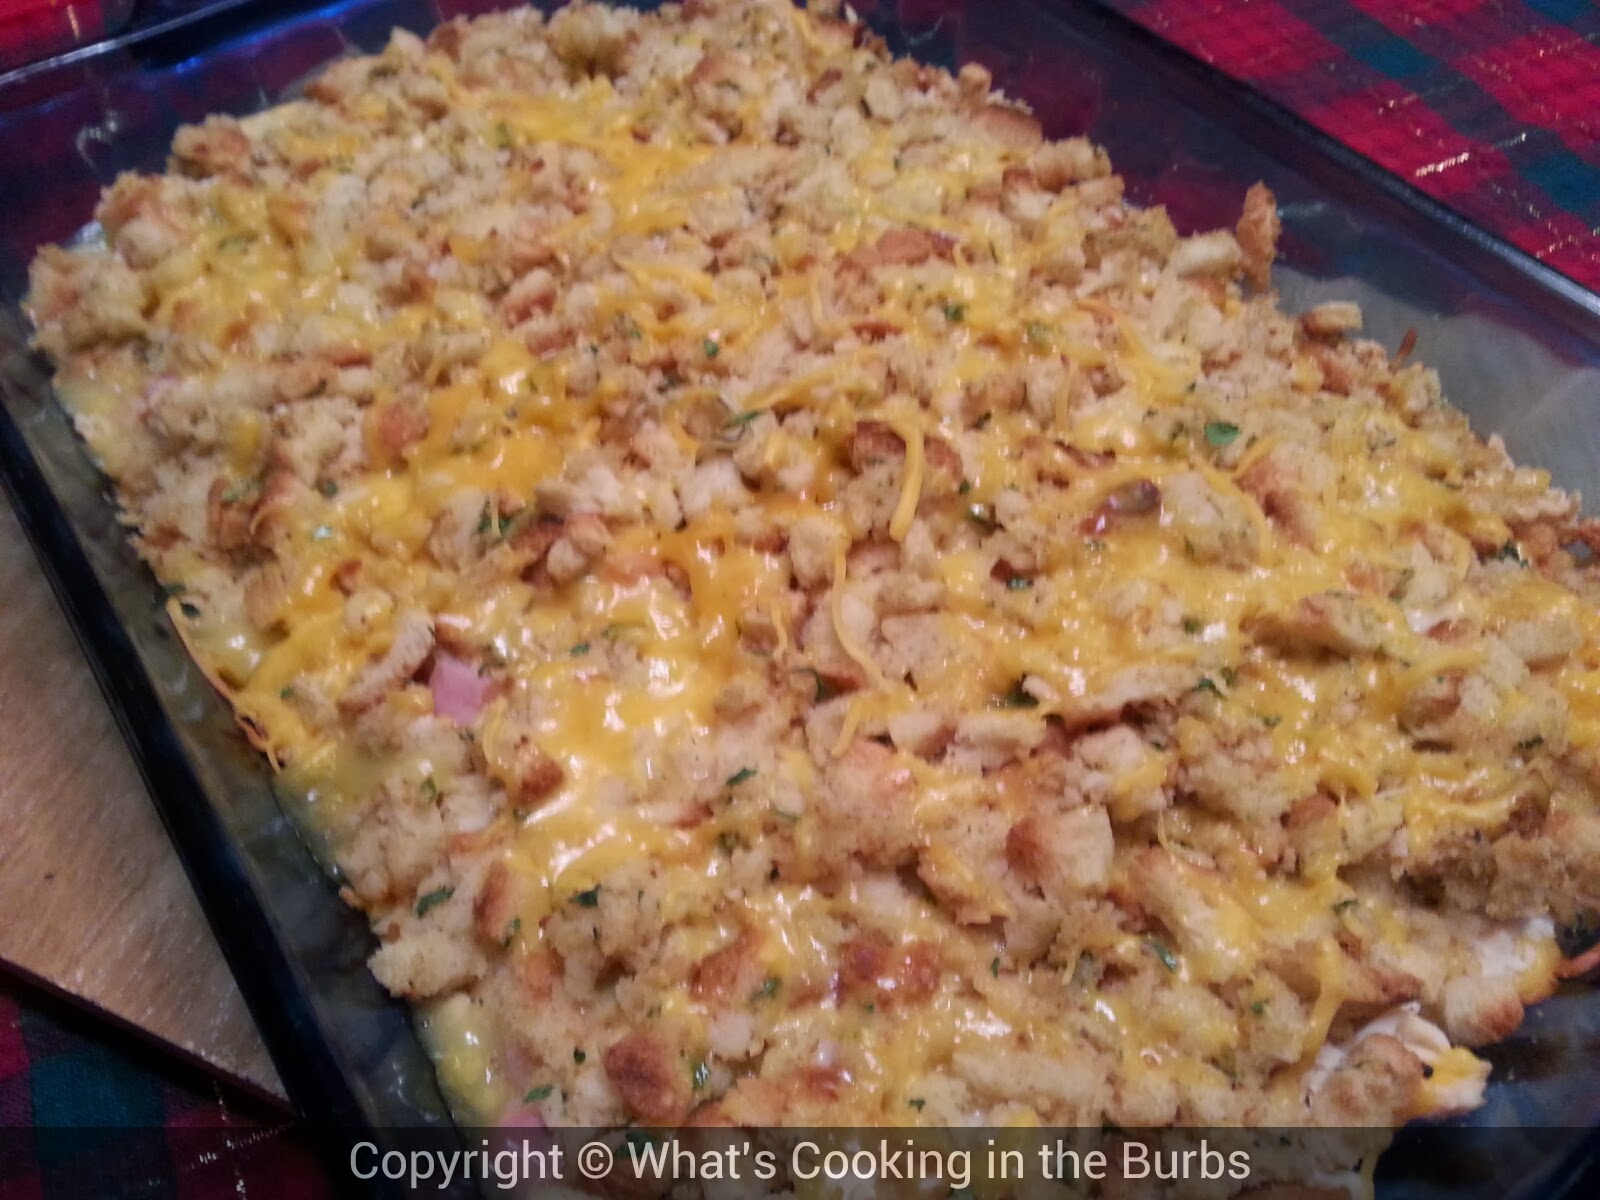 What's Cooking in the Burbs: Skinny Chicken Cordon Bleu Bake